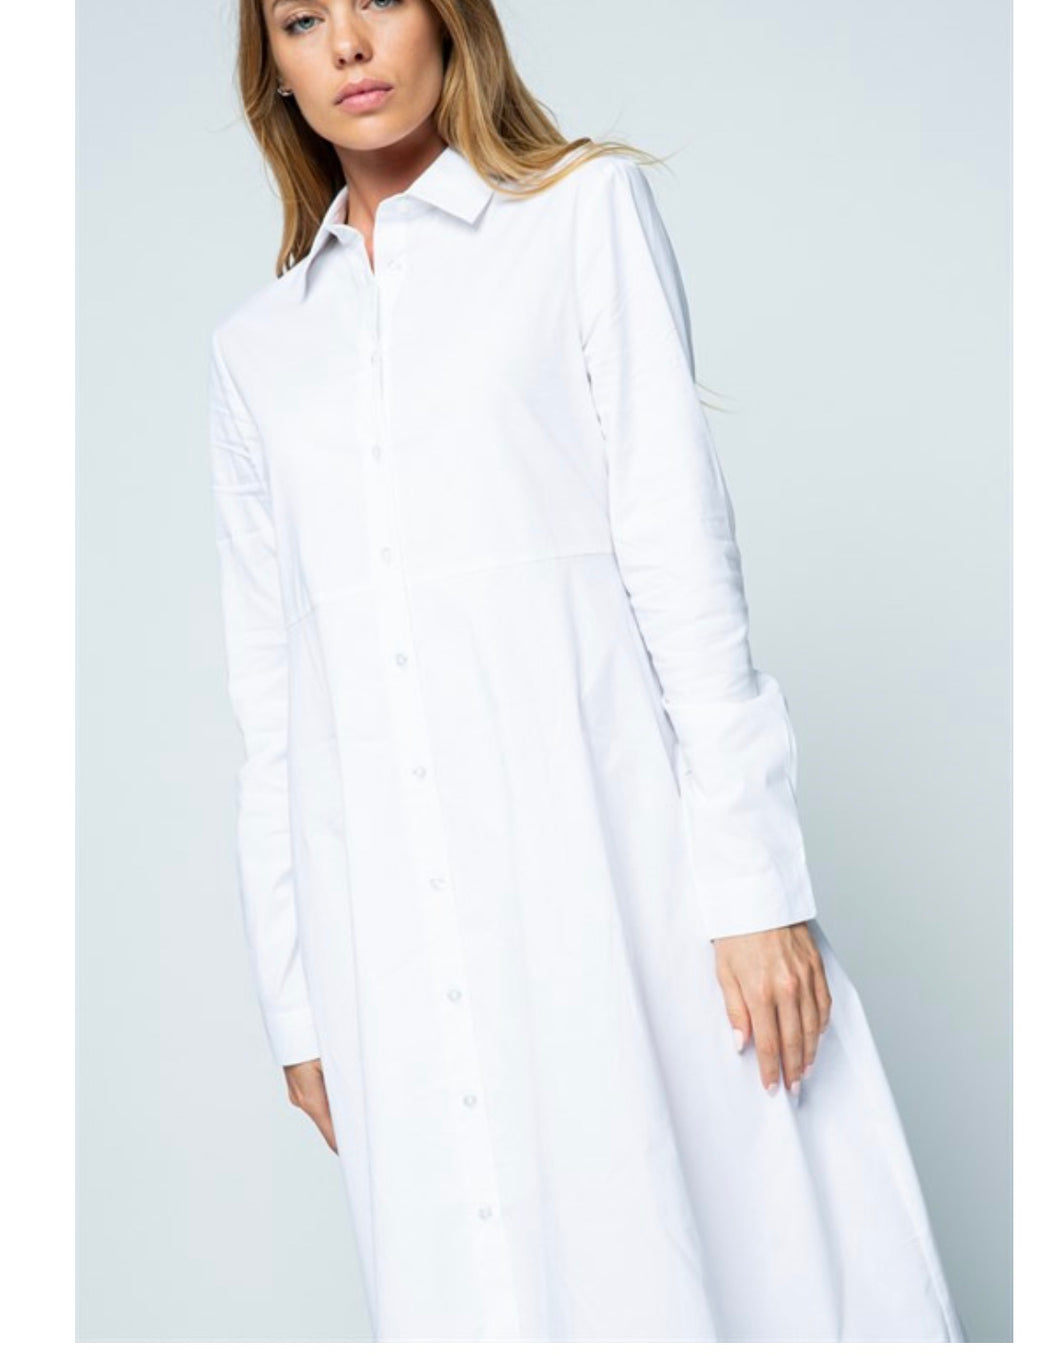 Tailored Cotton Poplin Shirtdress - White